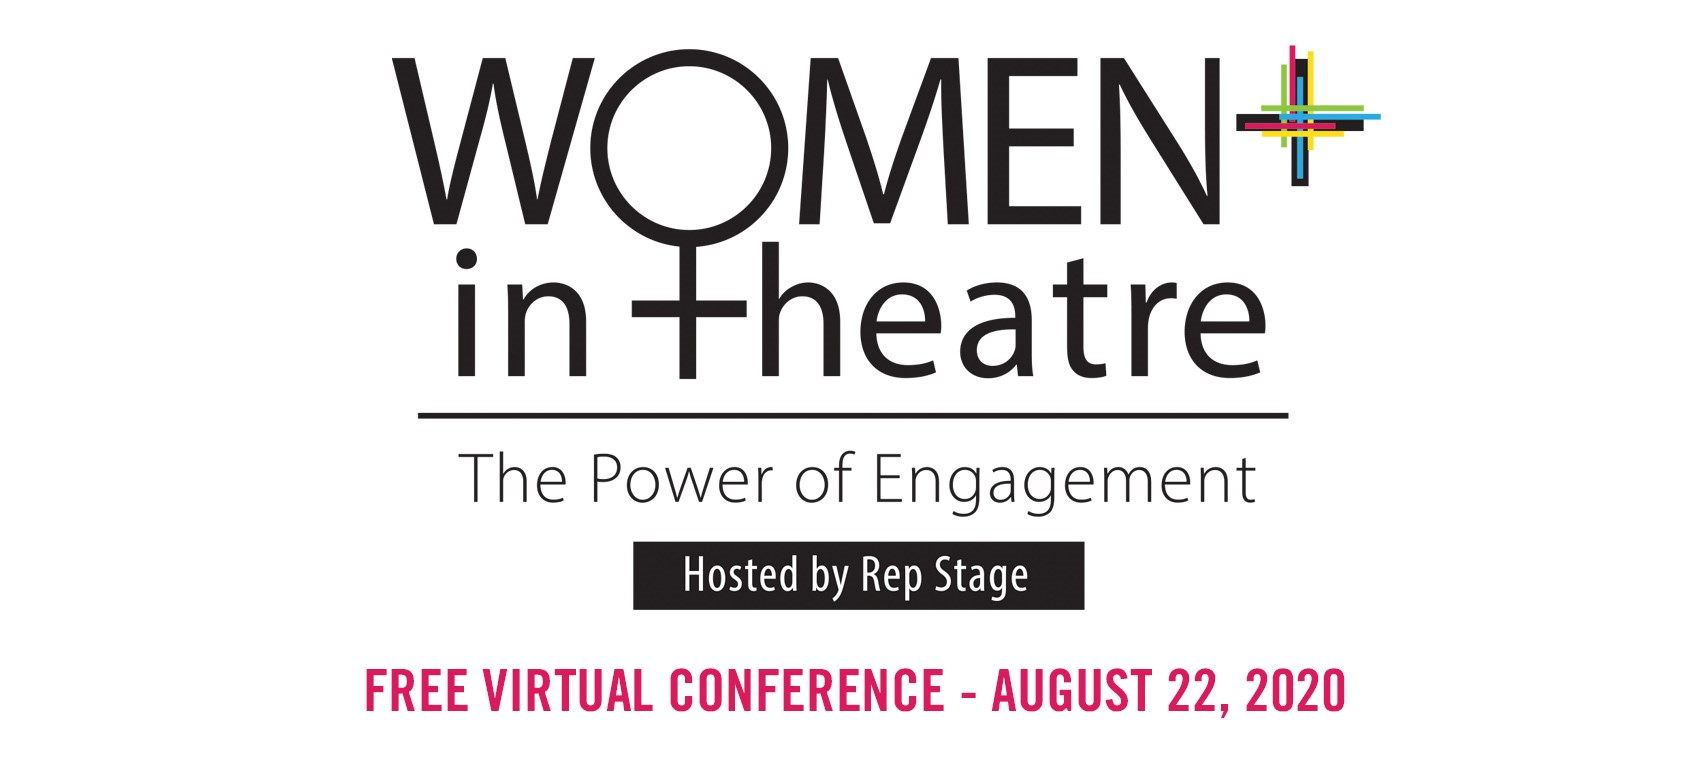 Women+ in Theatre